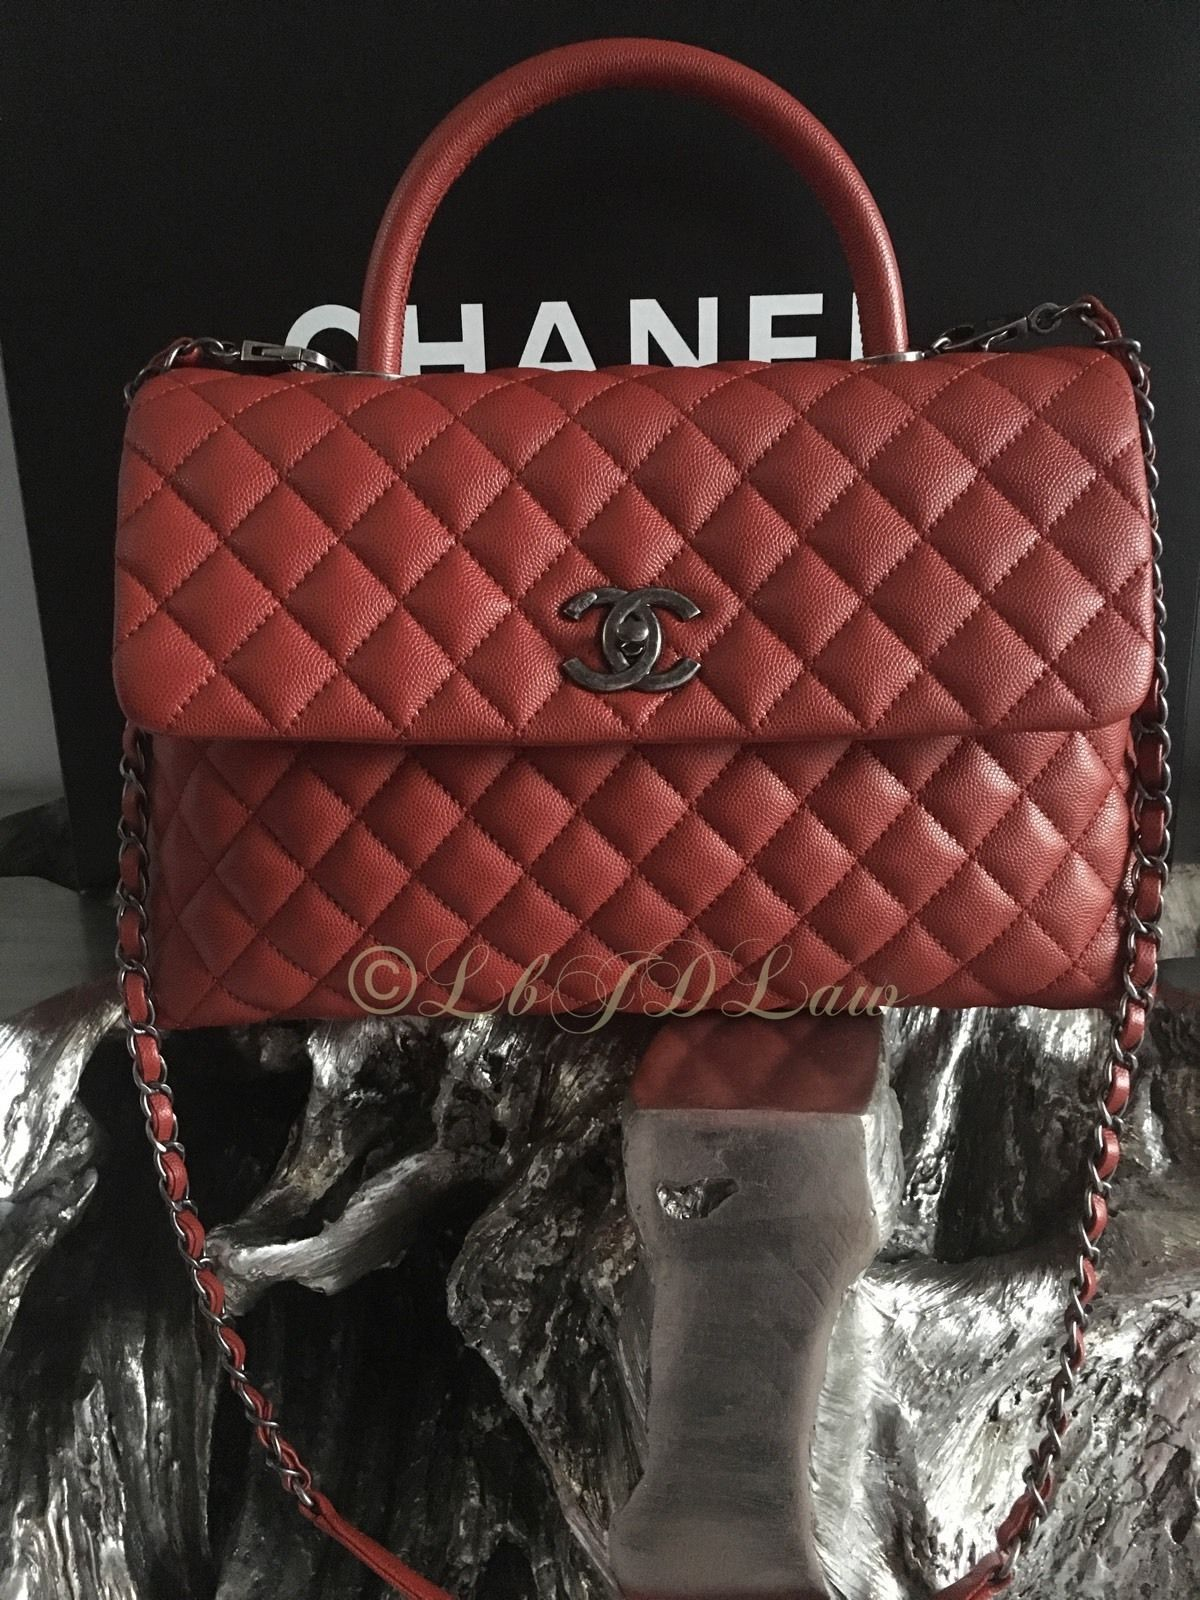 b6f74242c450 NWT CHANEL CoCo Handle MEDIUM Jumbo Flap Bag Red Caviar DETACHABLE  Crossbody NEW | Clothing, Shoes & Accessories, Women's Handbags & Bags,  Handbags & Purses ...